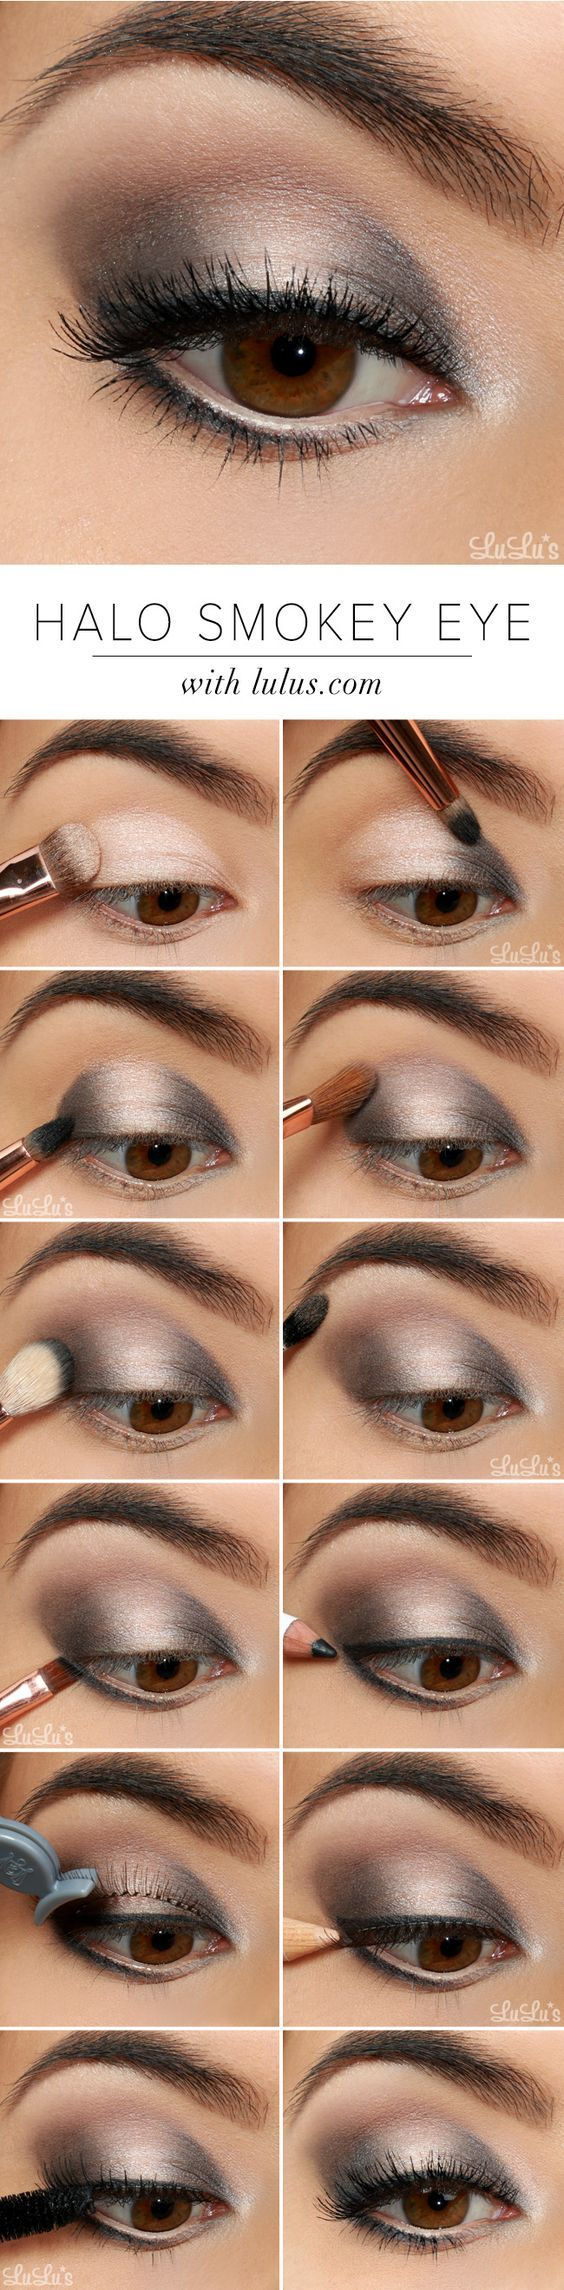 11 Easy Step By Step Makeup Tutorials For Beginners – Eye Makeup Ideas